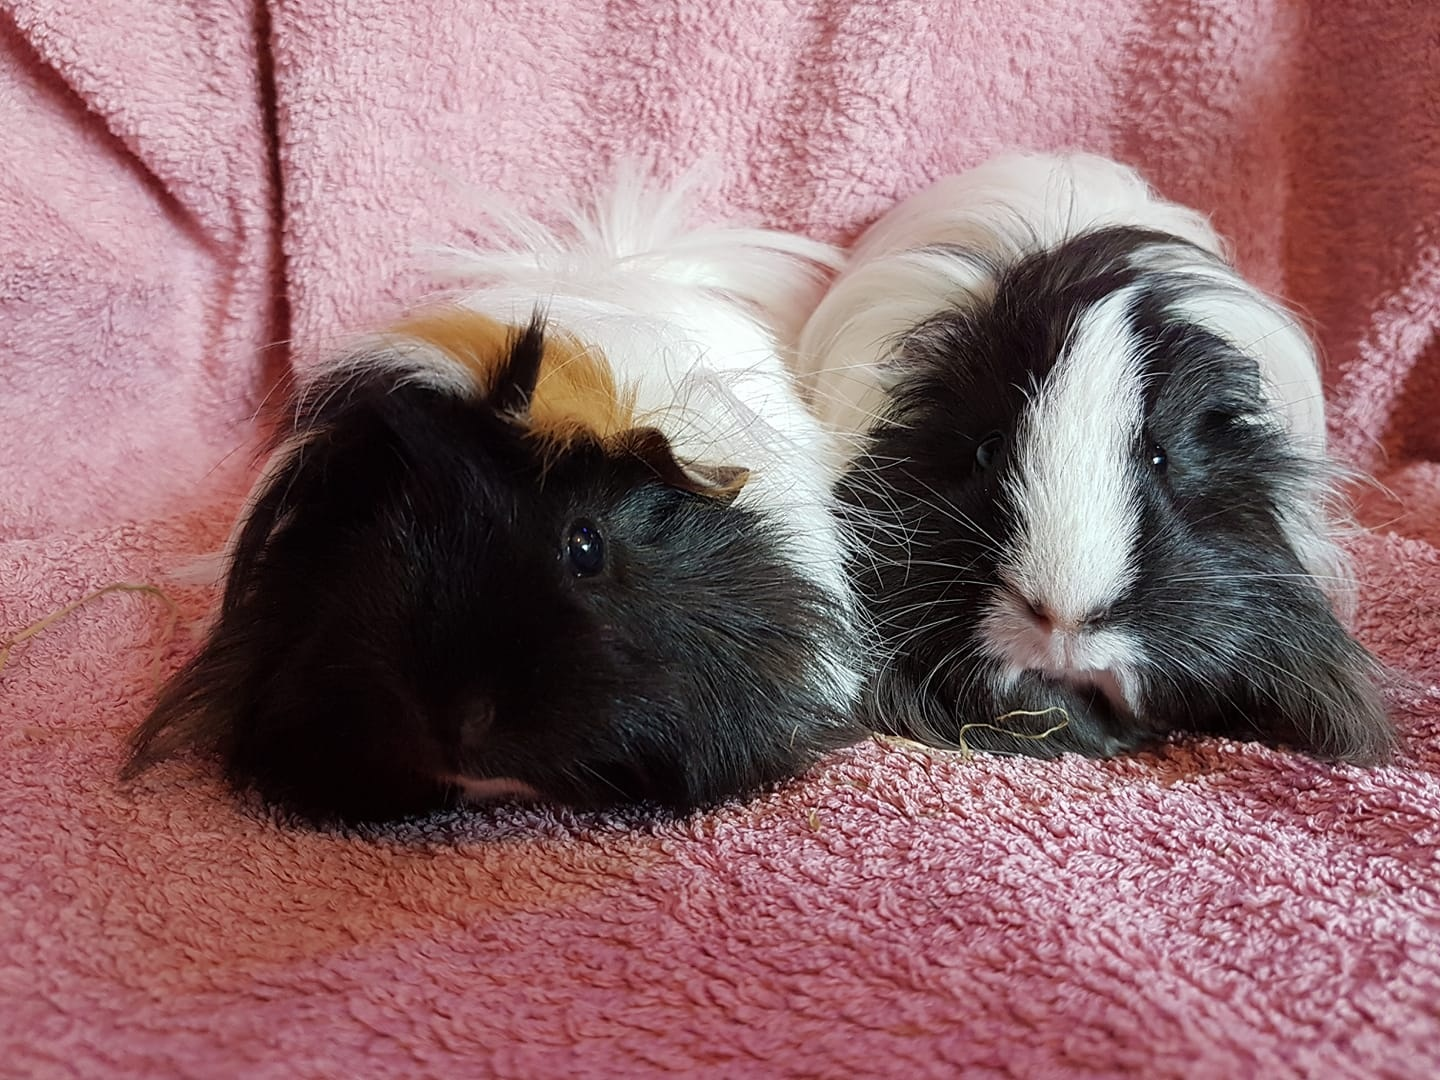 Sandwich &  Cotton (Lenny & Lou Lou)June 25th 2018